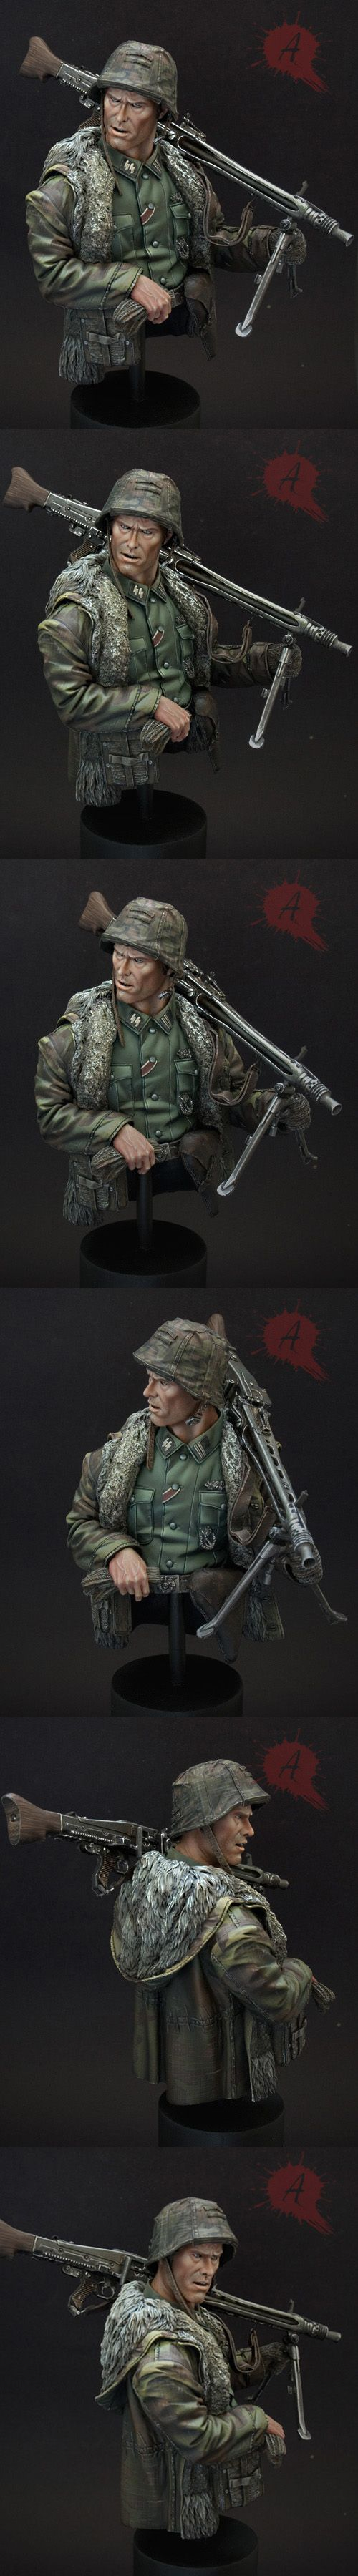 CoolMiniOrNot - Waffen SS MG42 Gunner by Arsies